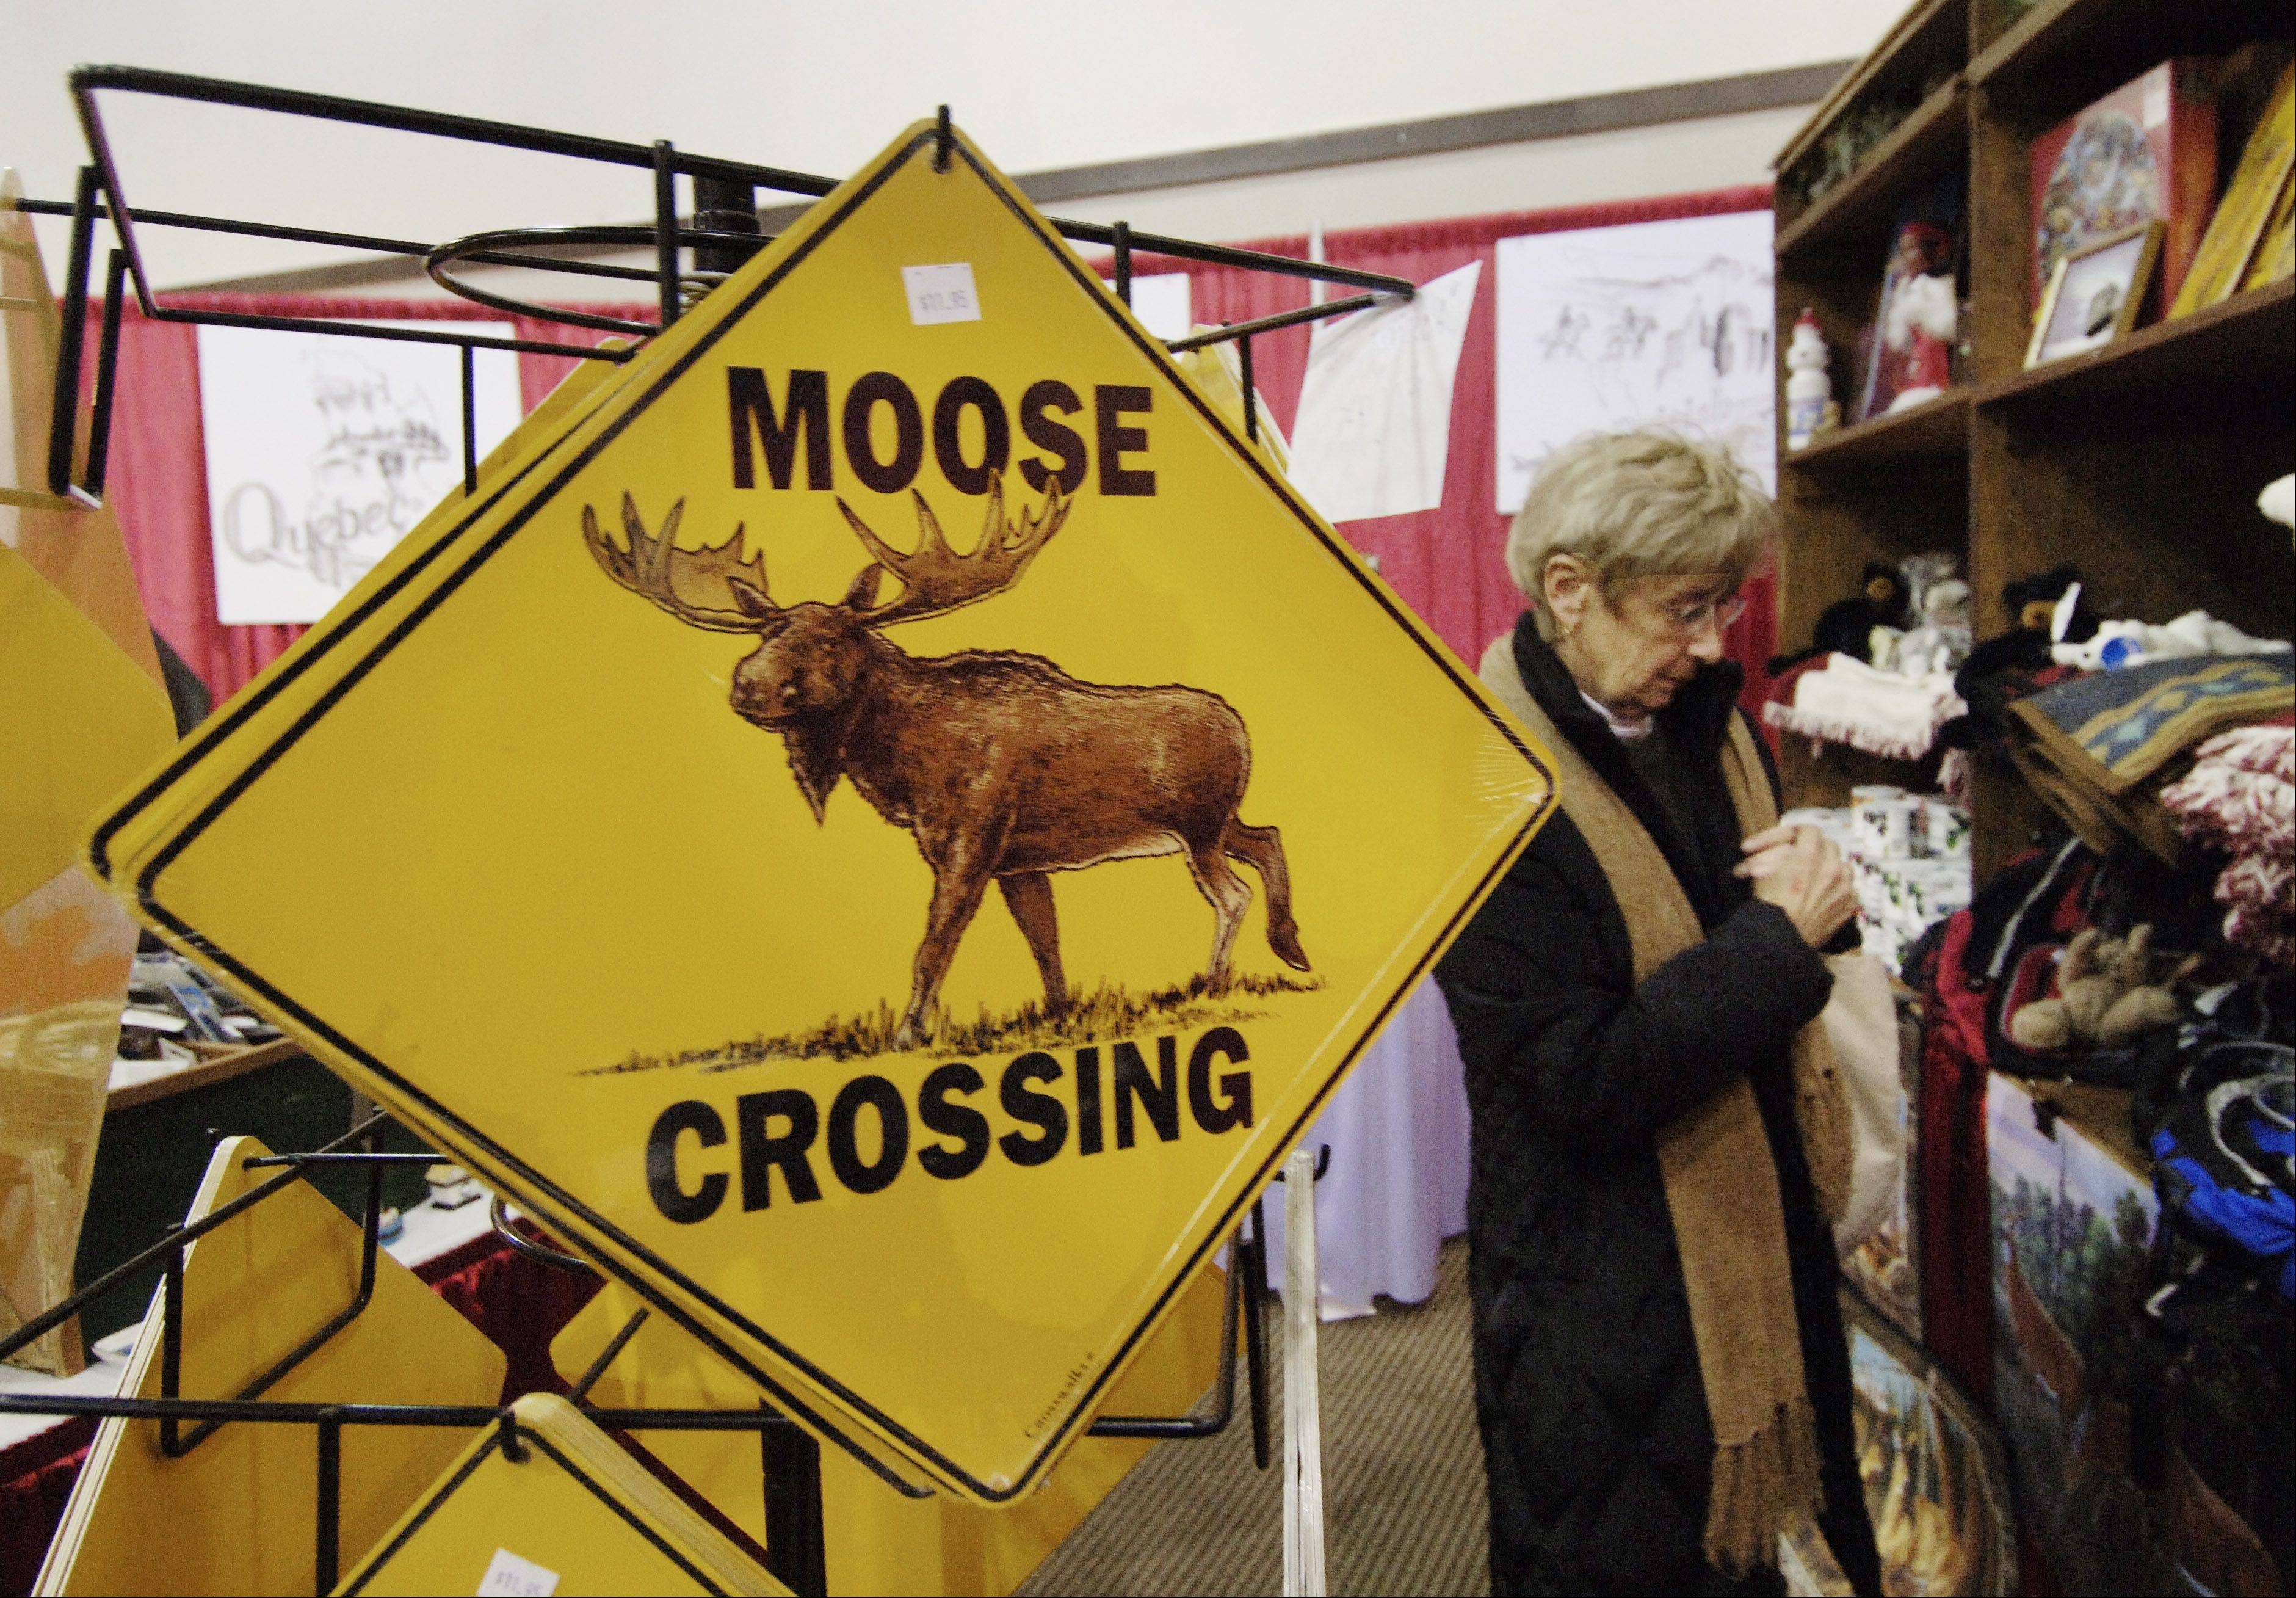 Barbara Bradley of Wheaton browses in the Moose Bay Trading Company at